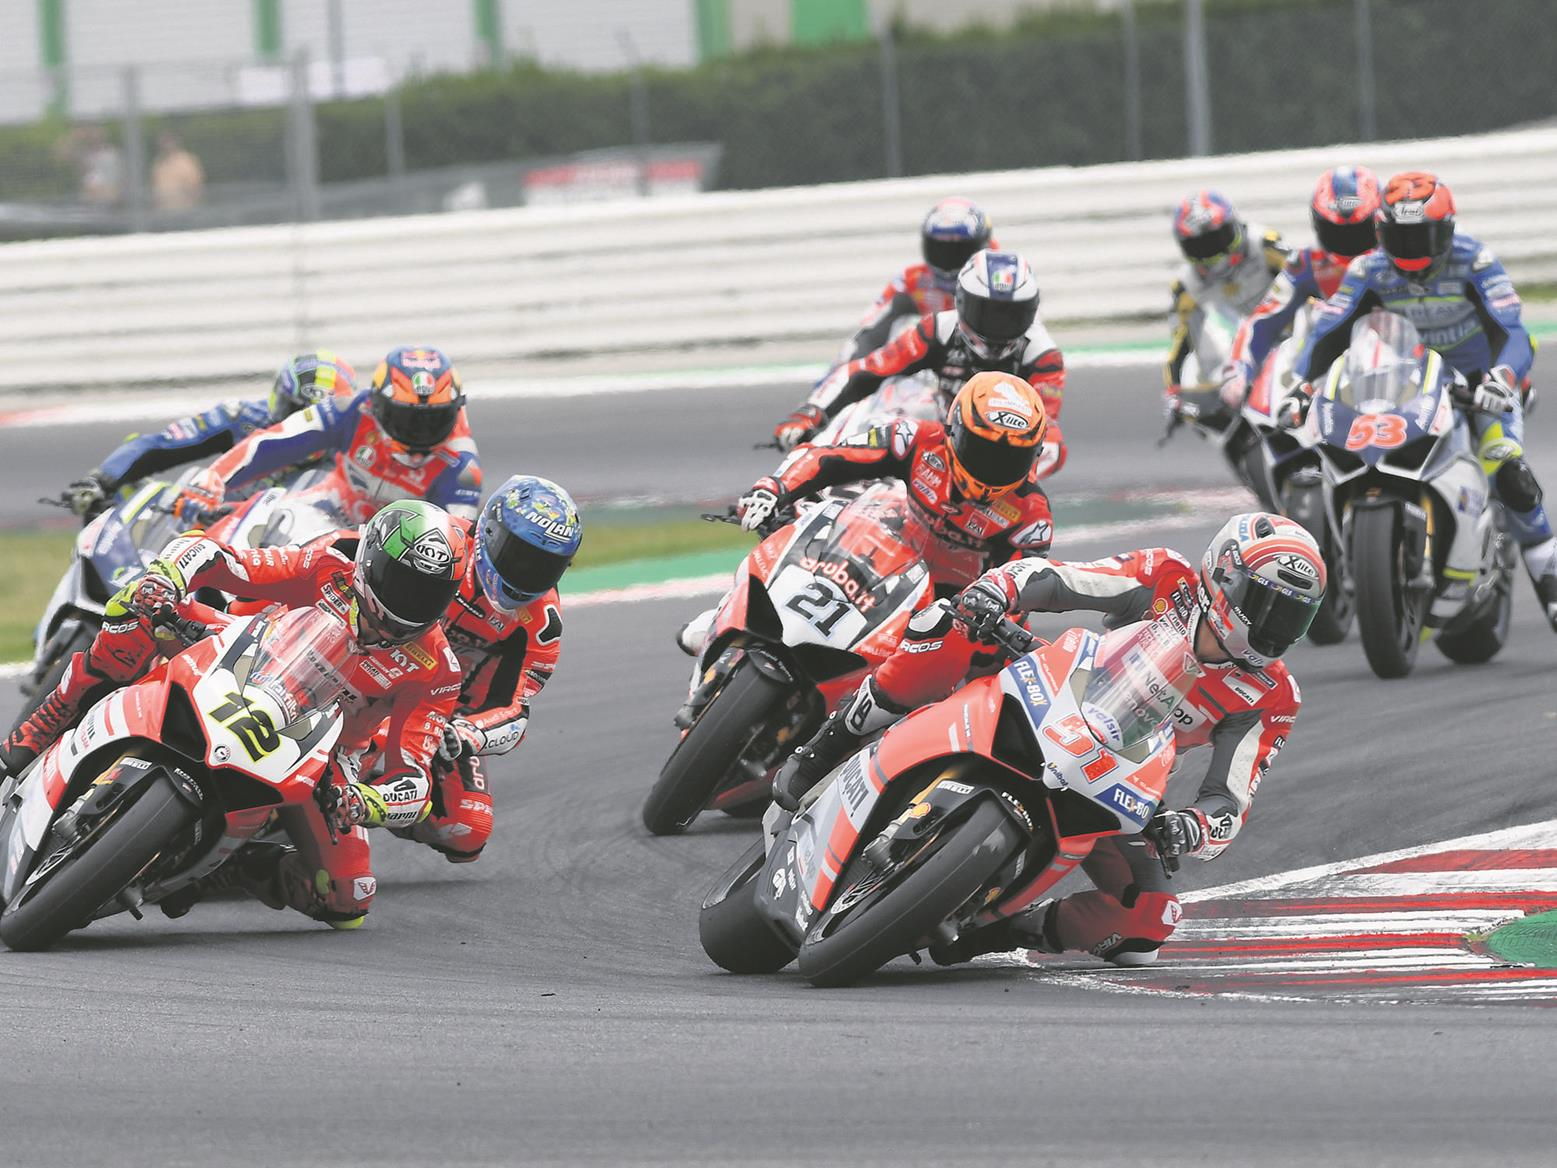 Racers turn aboard Ducati Panigale V4s